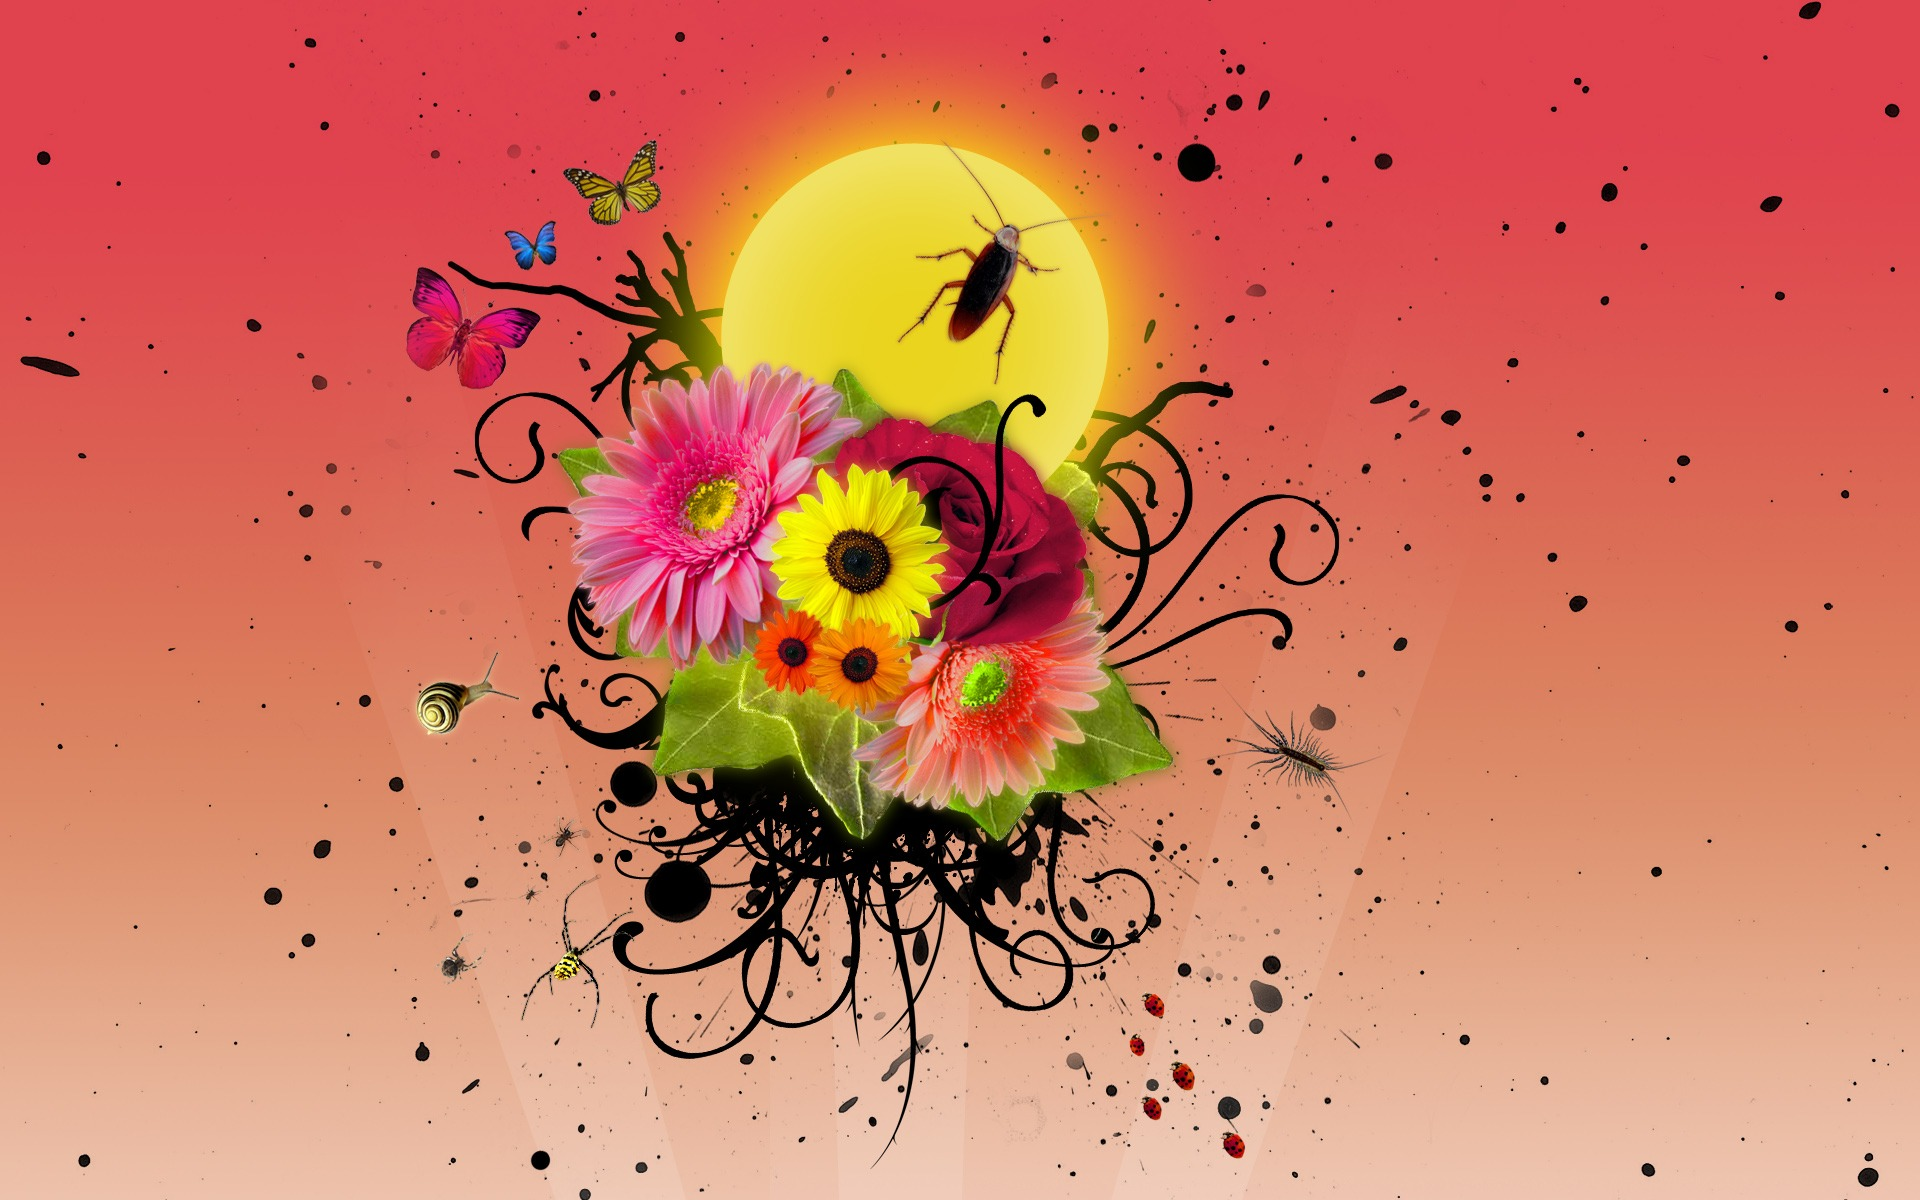 Flowers and insects Wallpaper Vector D Wallpapers in jpg format